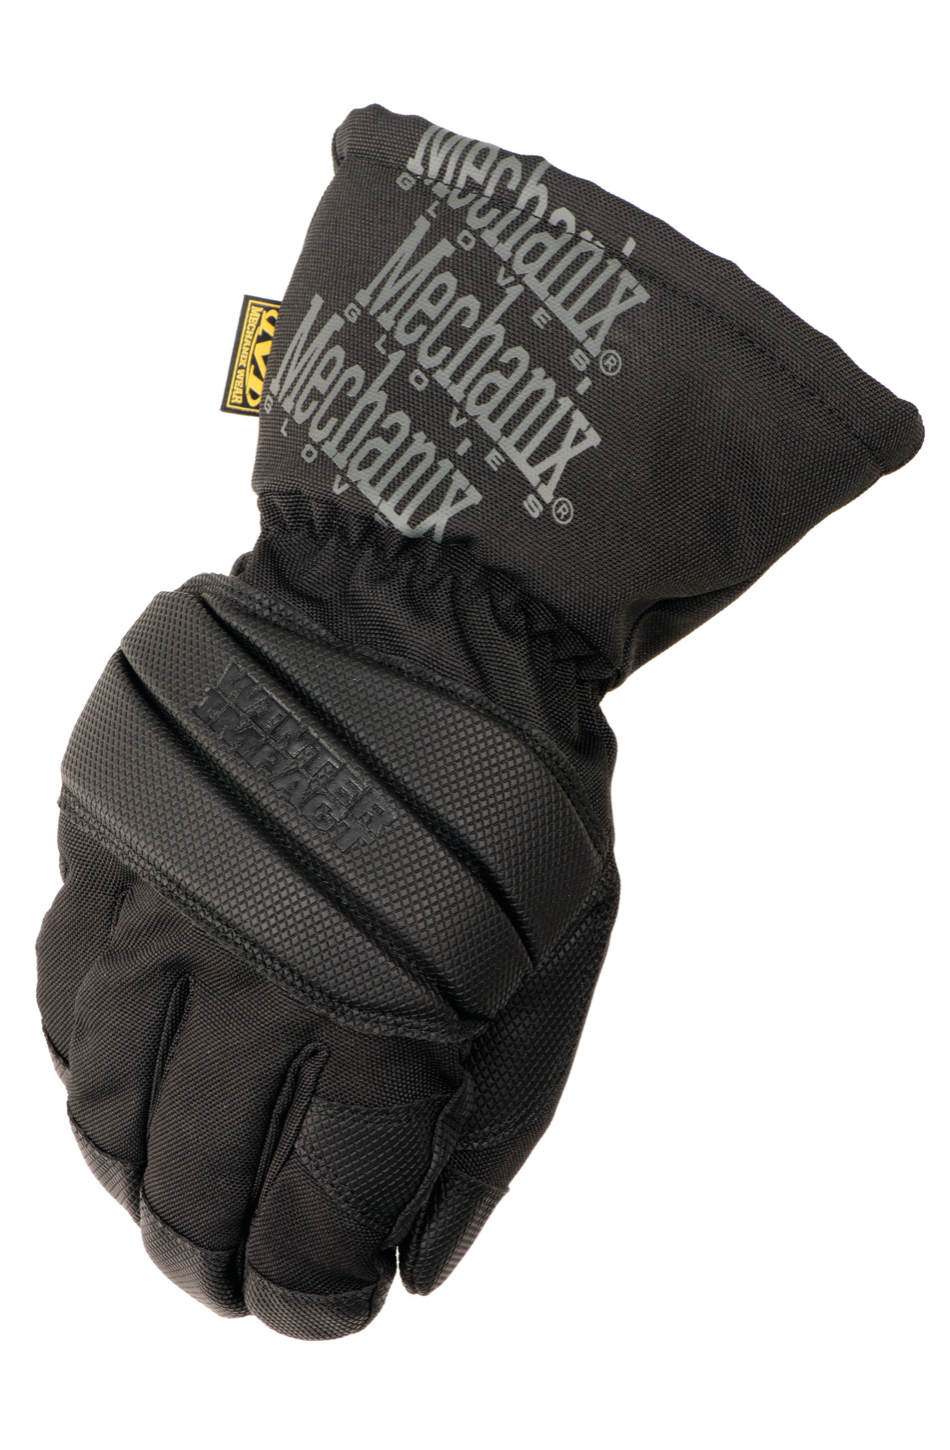 Mechanix Wear MCW-WI-008 Gloves, Shop, Winter Impact Gen 2, Gauntlet Style, Insulated, Black / Gray, Small, Pair